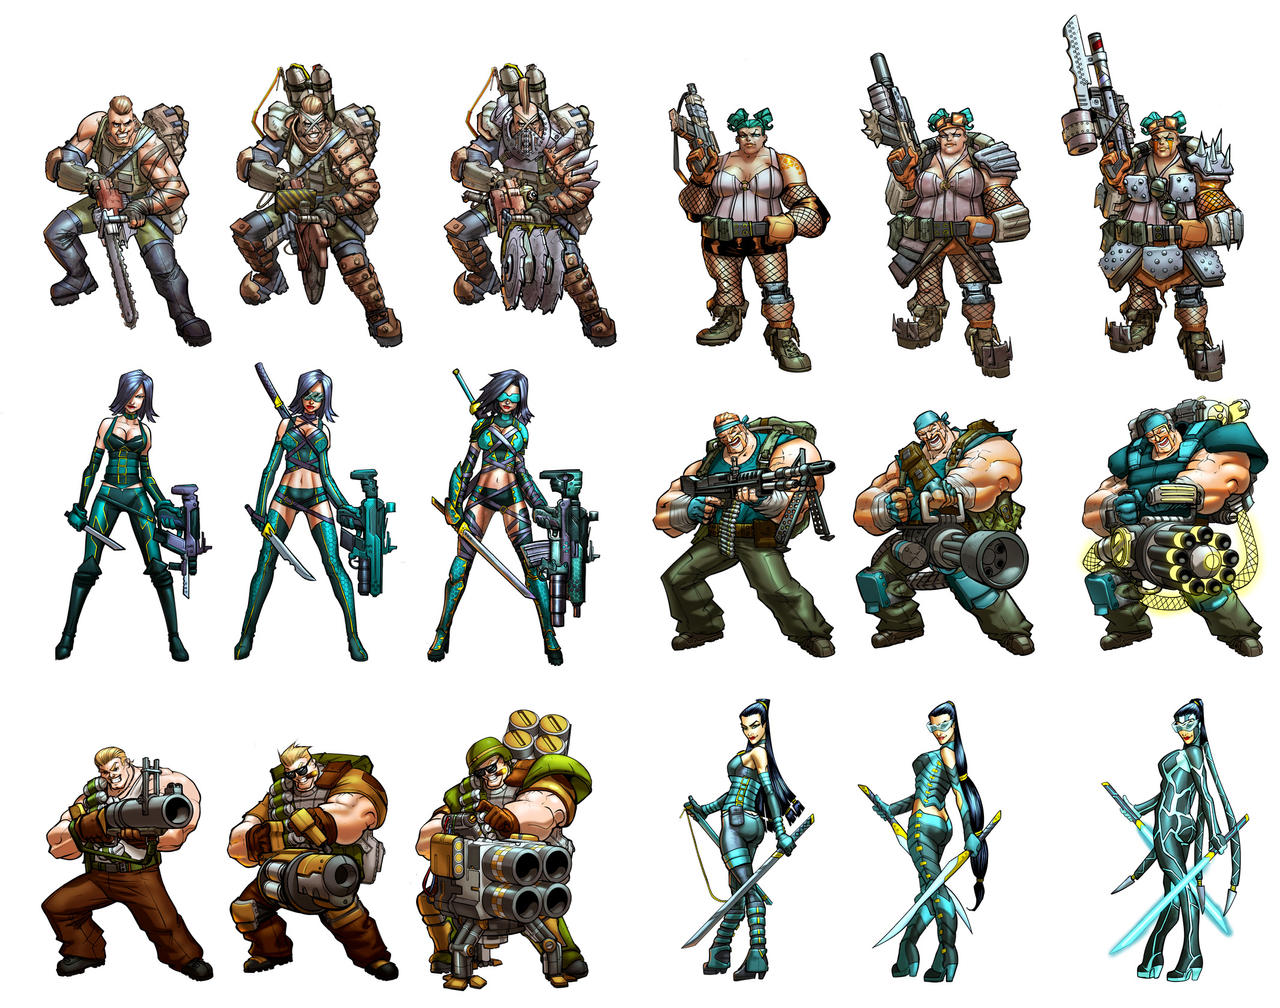 Character Design Evolution : Evolution art fat rascal games by billydallaspatton on